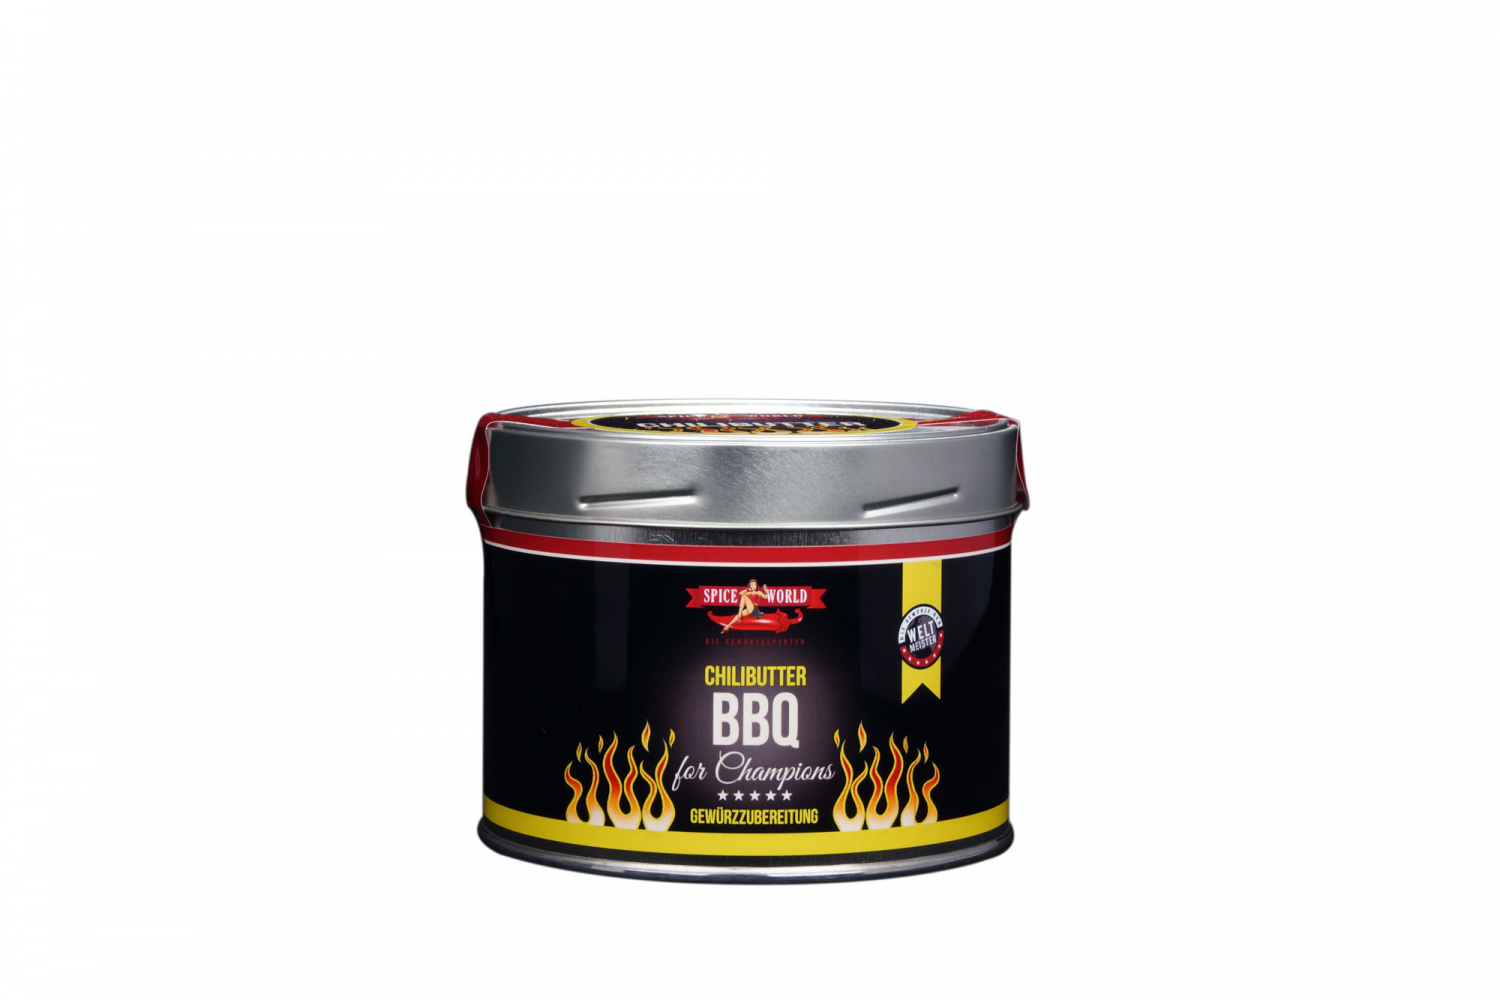 Barbecue-for-Champions - ChiliButter Gewürz 130g für 2 kg Butter, 550ml Gastro-Dose